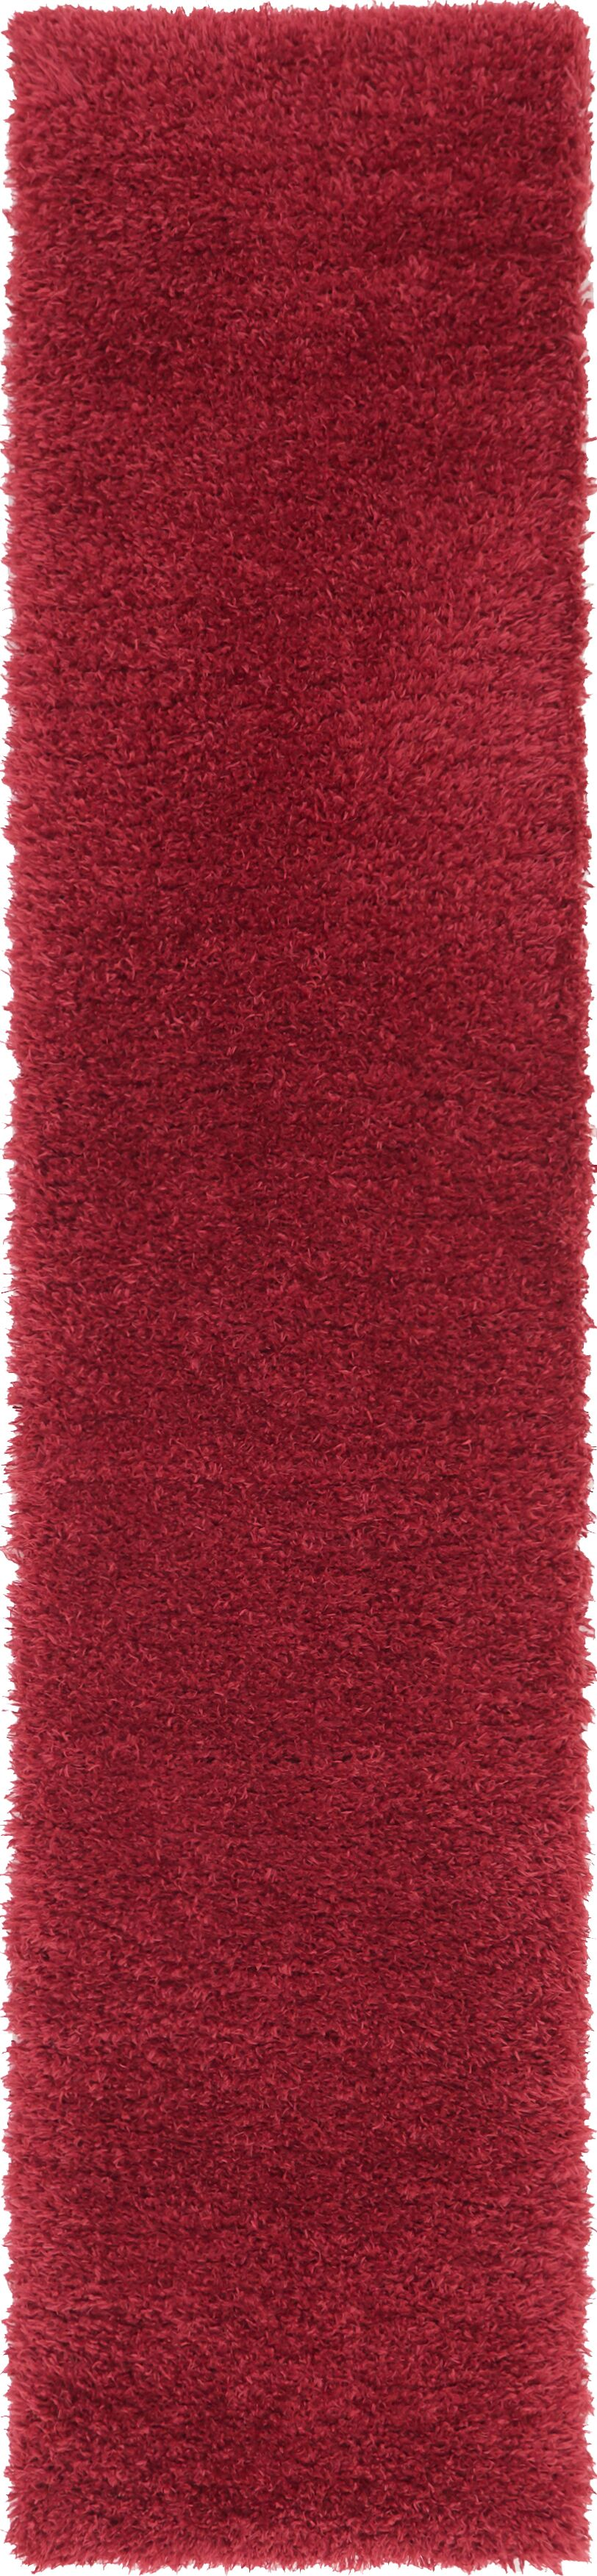 Red Area Rug Rug Size: Runner 2' x 10'